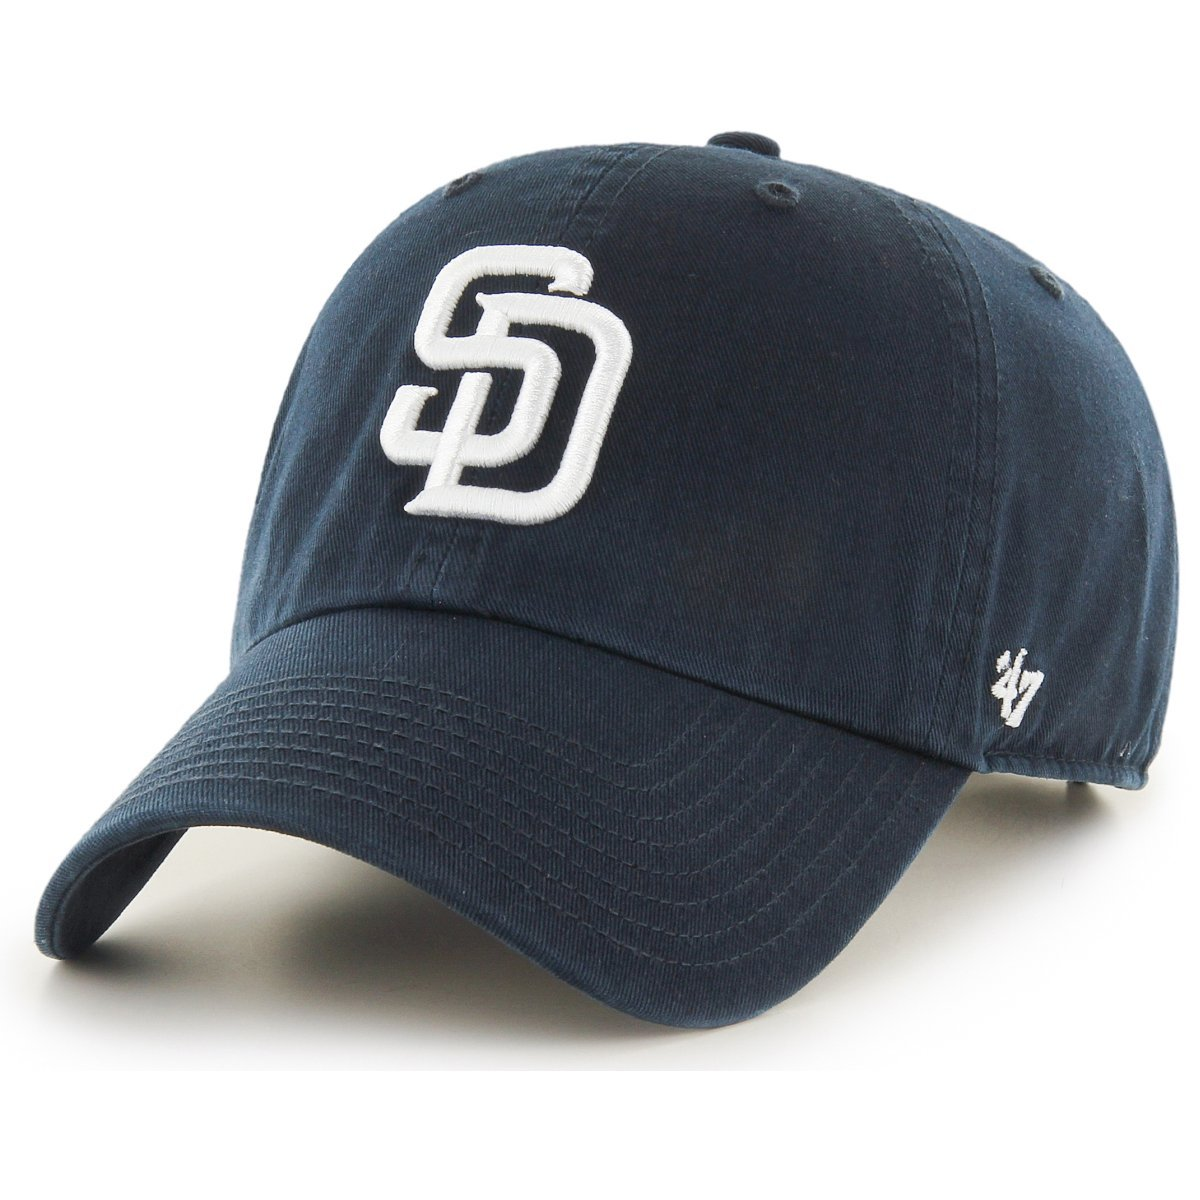 '47 Brand Adjustable Cap CLEAN UP San Diego Padres navy